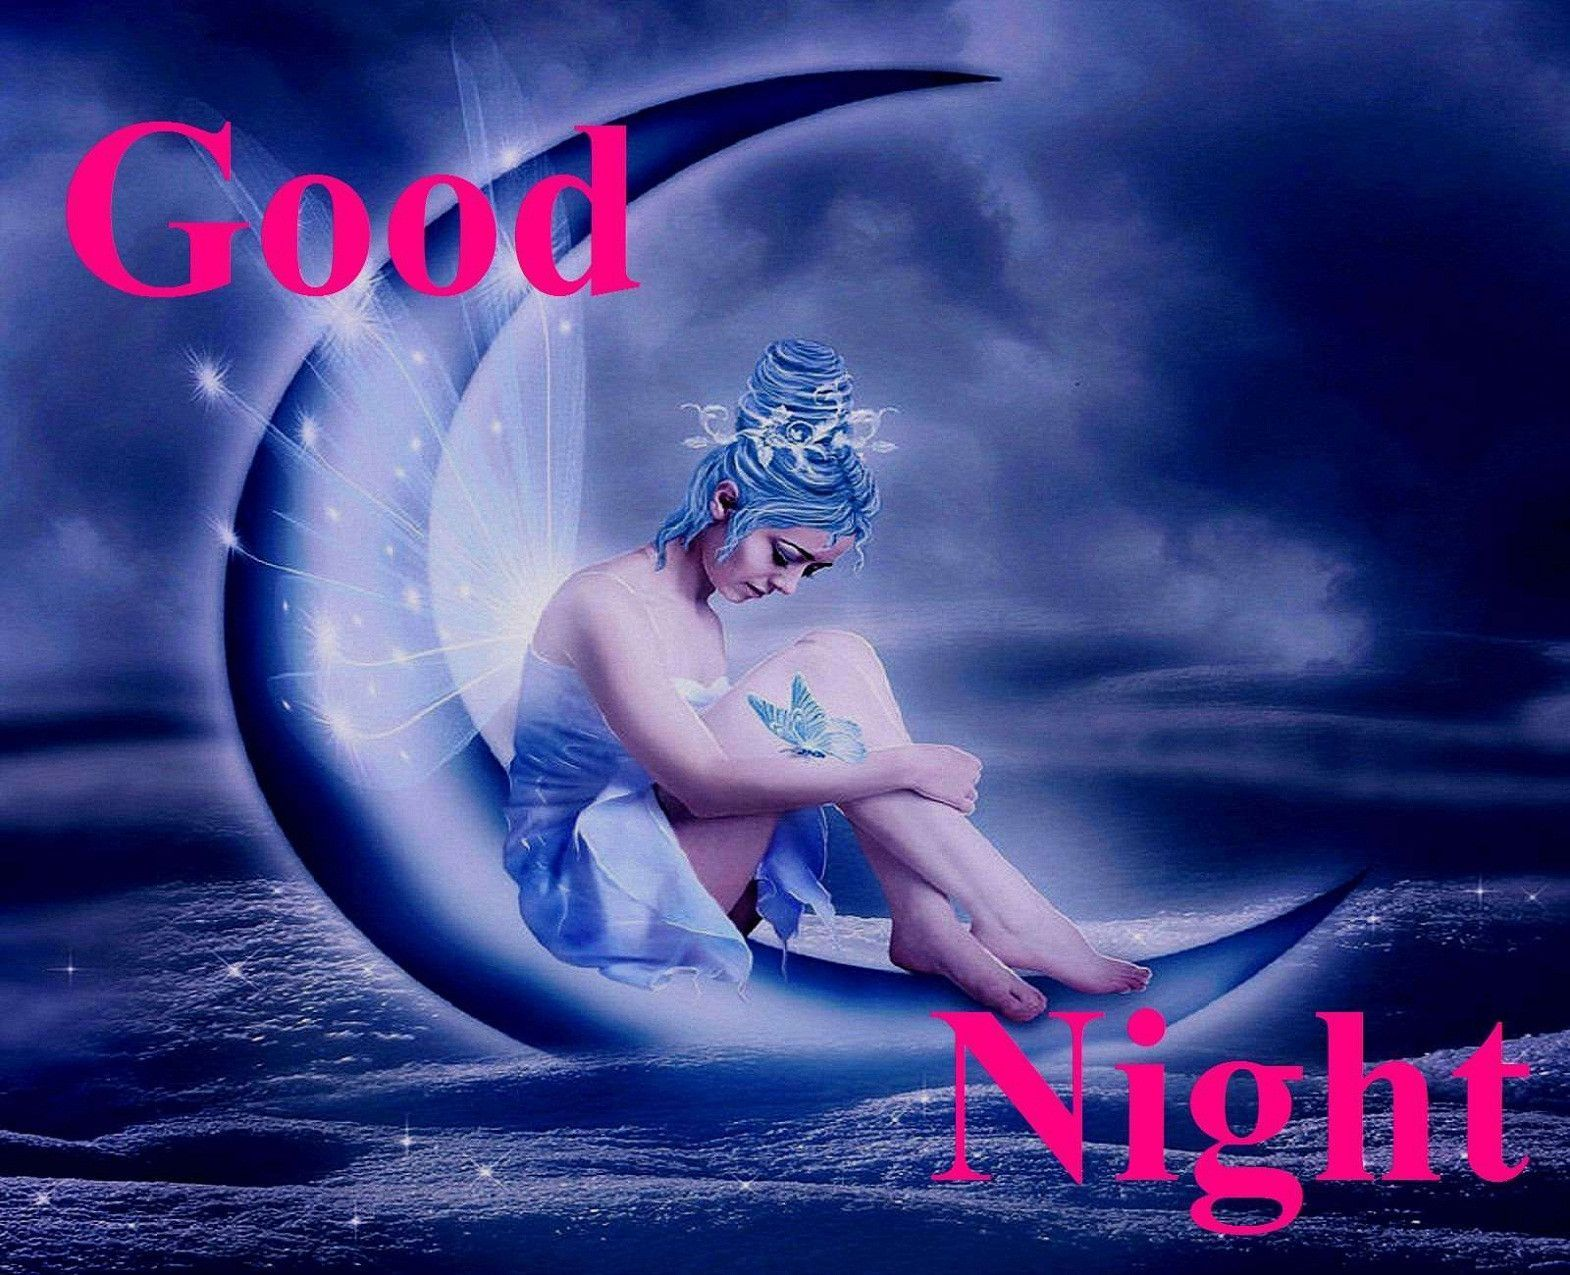 Good Night Wishes Images For Facebook Share Hd Wallpapers 1080p Good Night Wallpaper Day For Night Couple Dancing